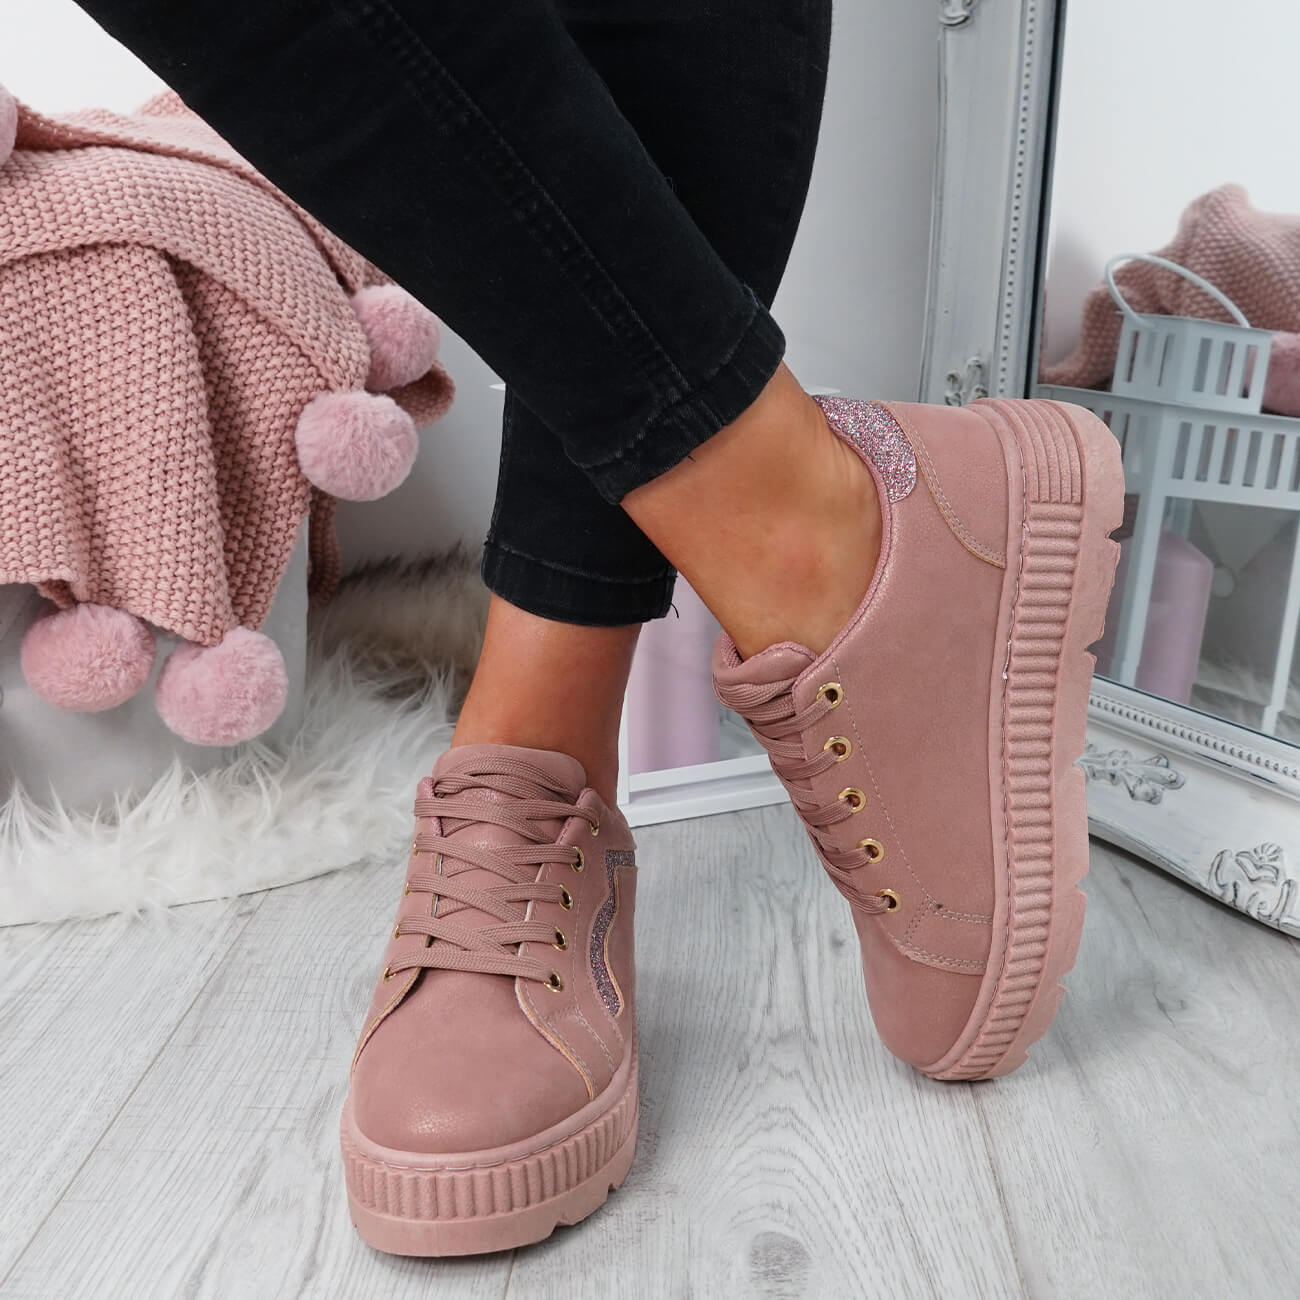 WOMENS-LADIES-LACE-UP-PLATFORM-TRAINERS-PLIMSOLL-SKATE-SNEAKERS-SHOES-SIZE thumbnail 23